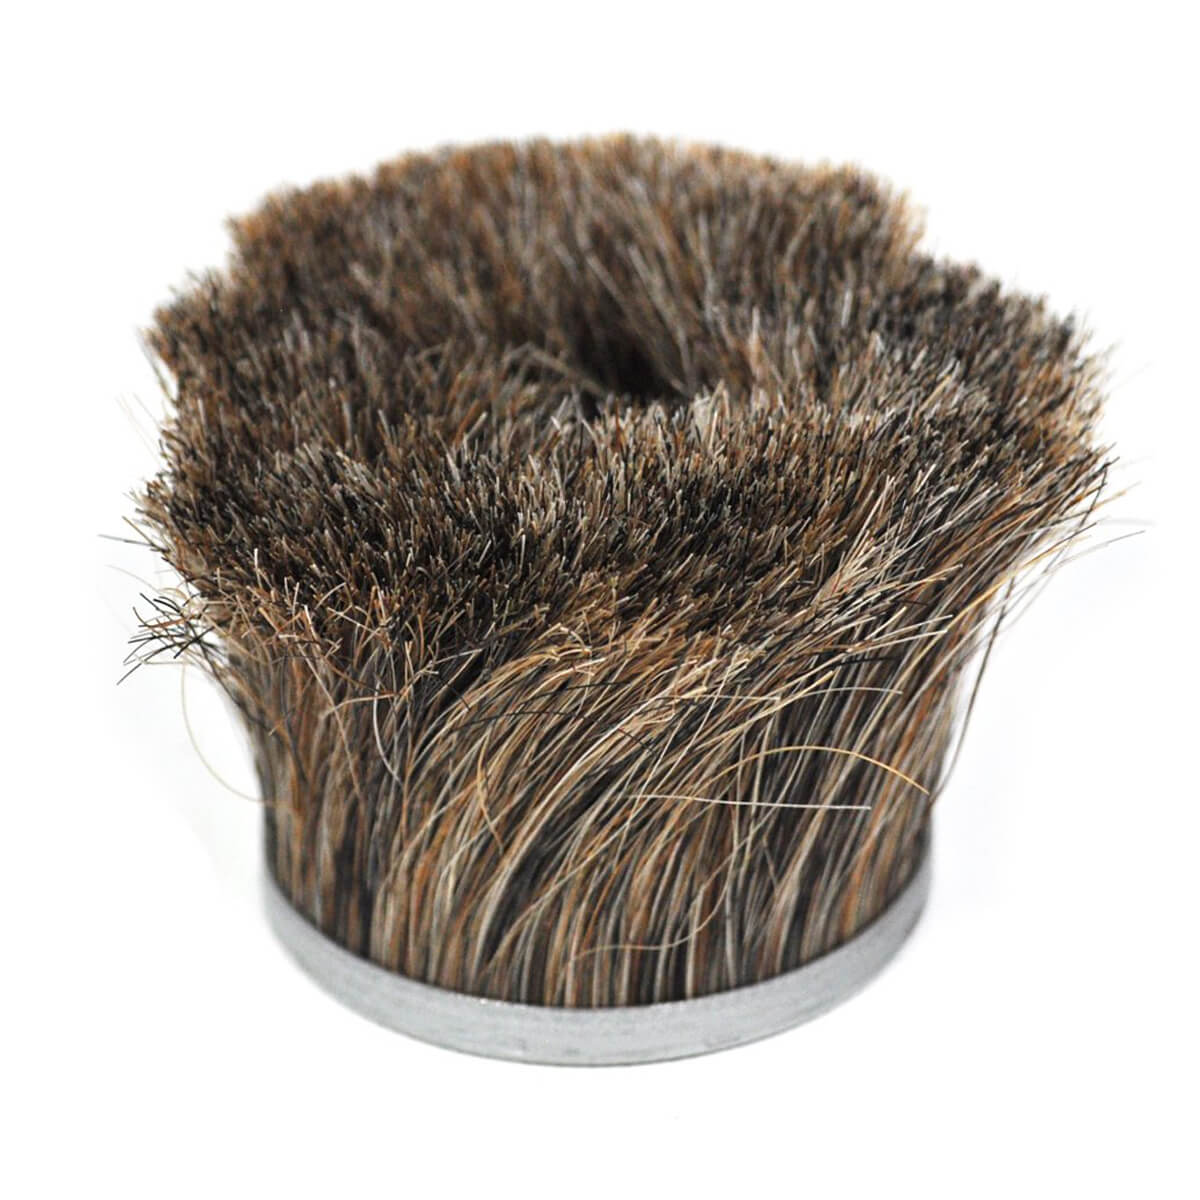 Bristles for the Sirena dusting brush attachment